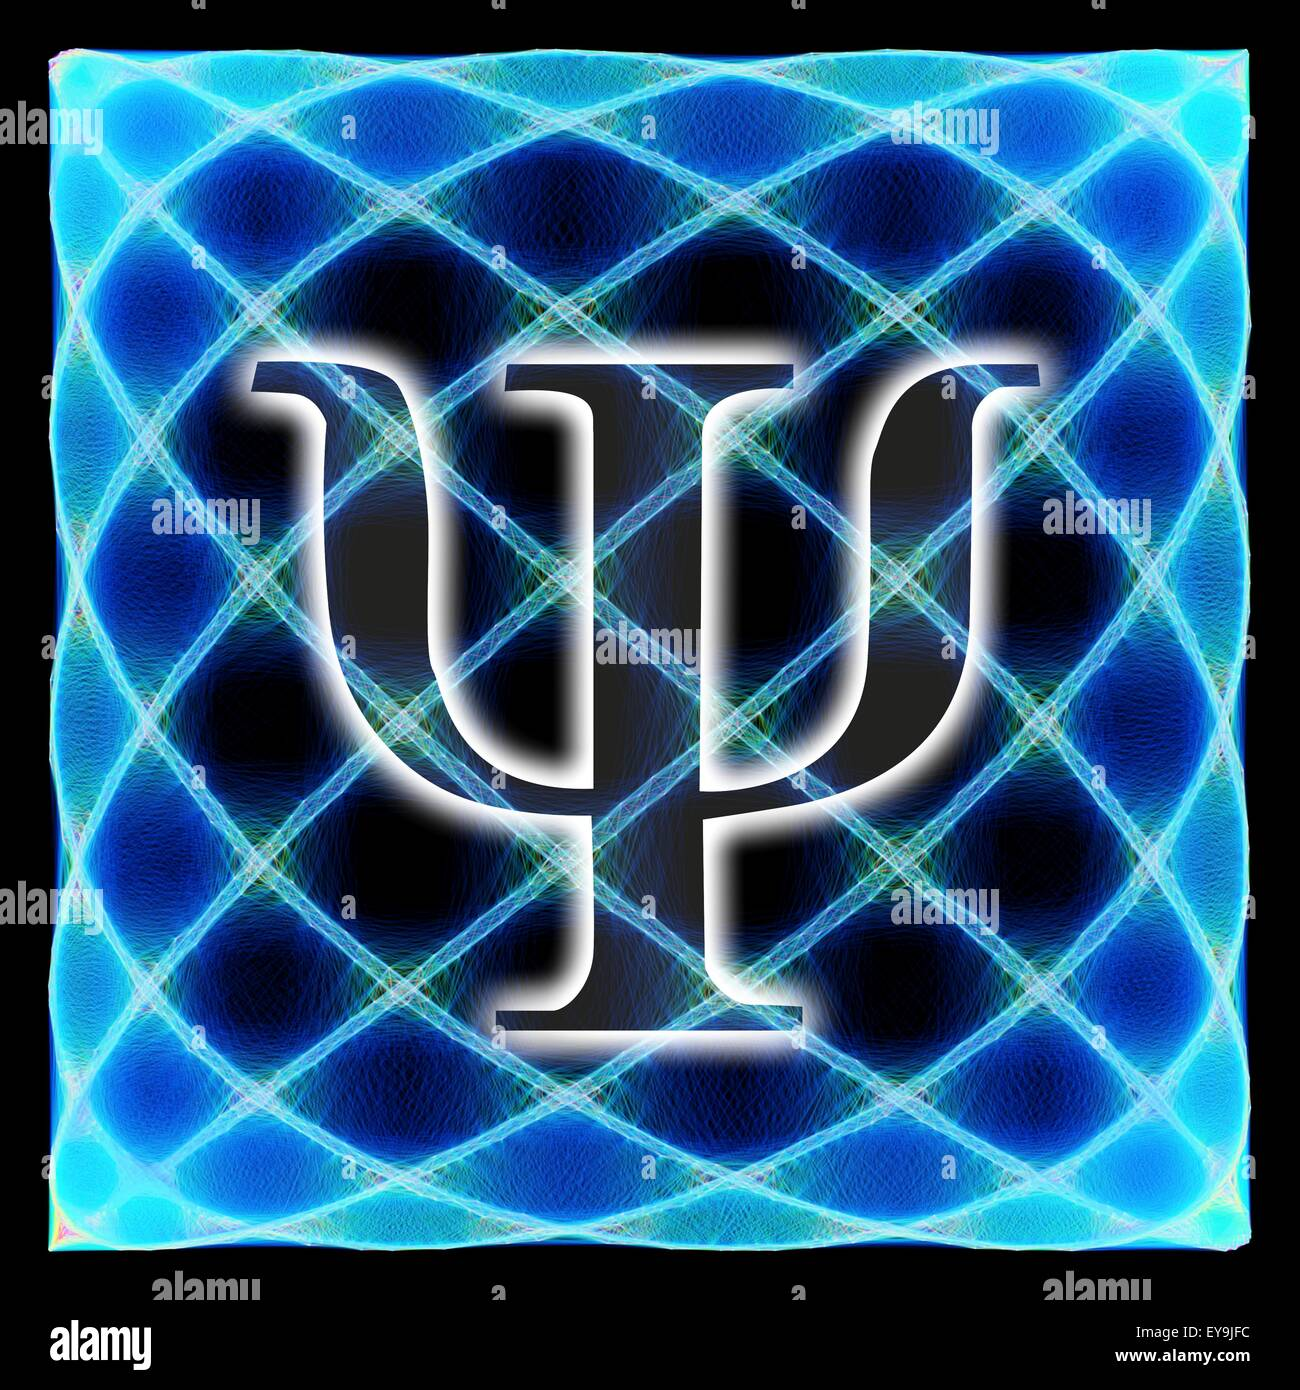 Computer artwork of the greek letter psi and a Lissajous figure in the background. The letter psi is commonly used - Stock Image